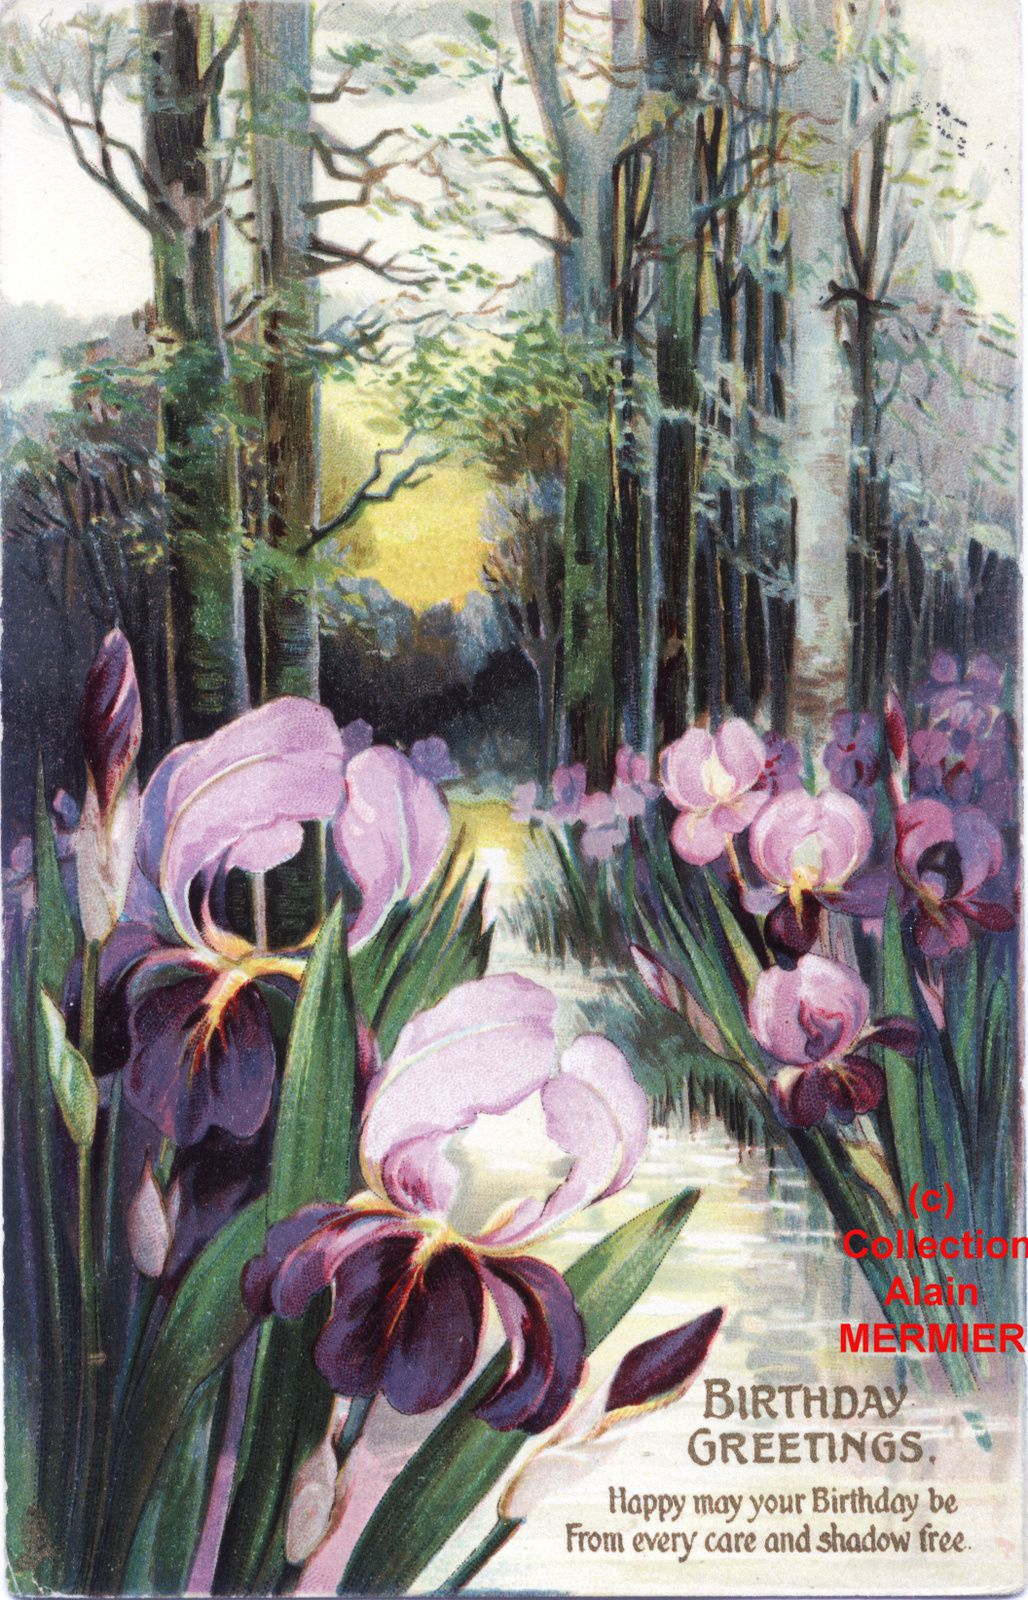 Iris -1944- Birthday greetings.  Landscape. U.S.A. 1914.